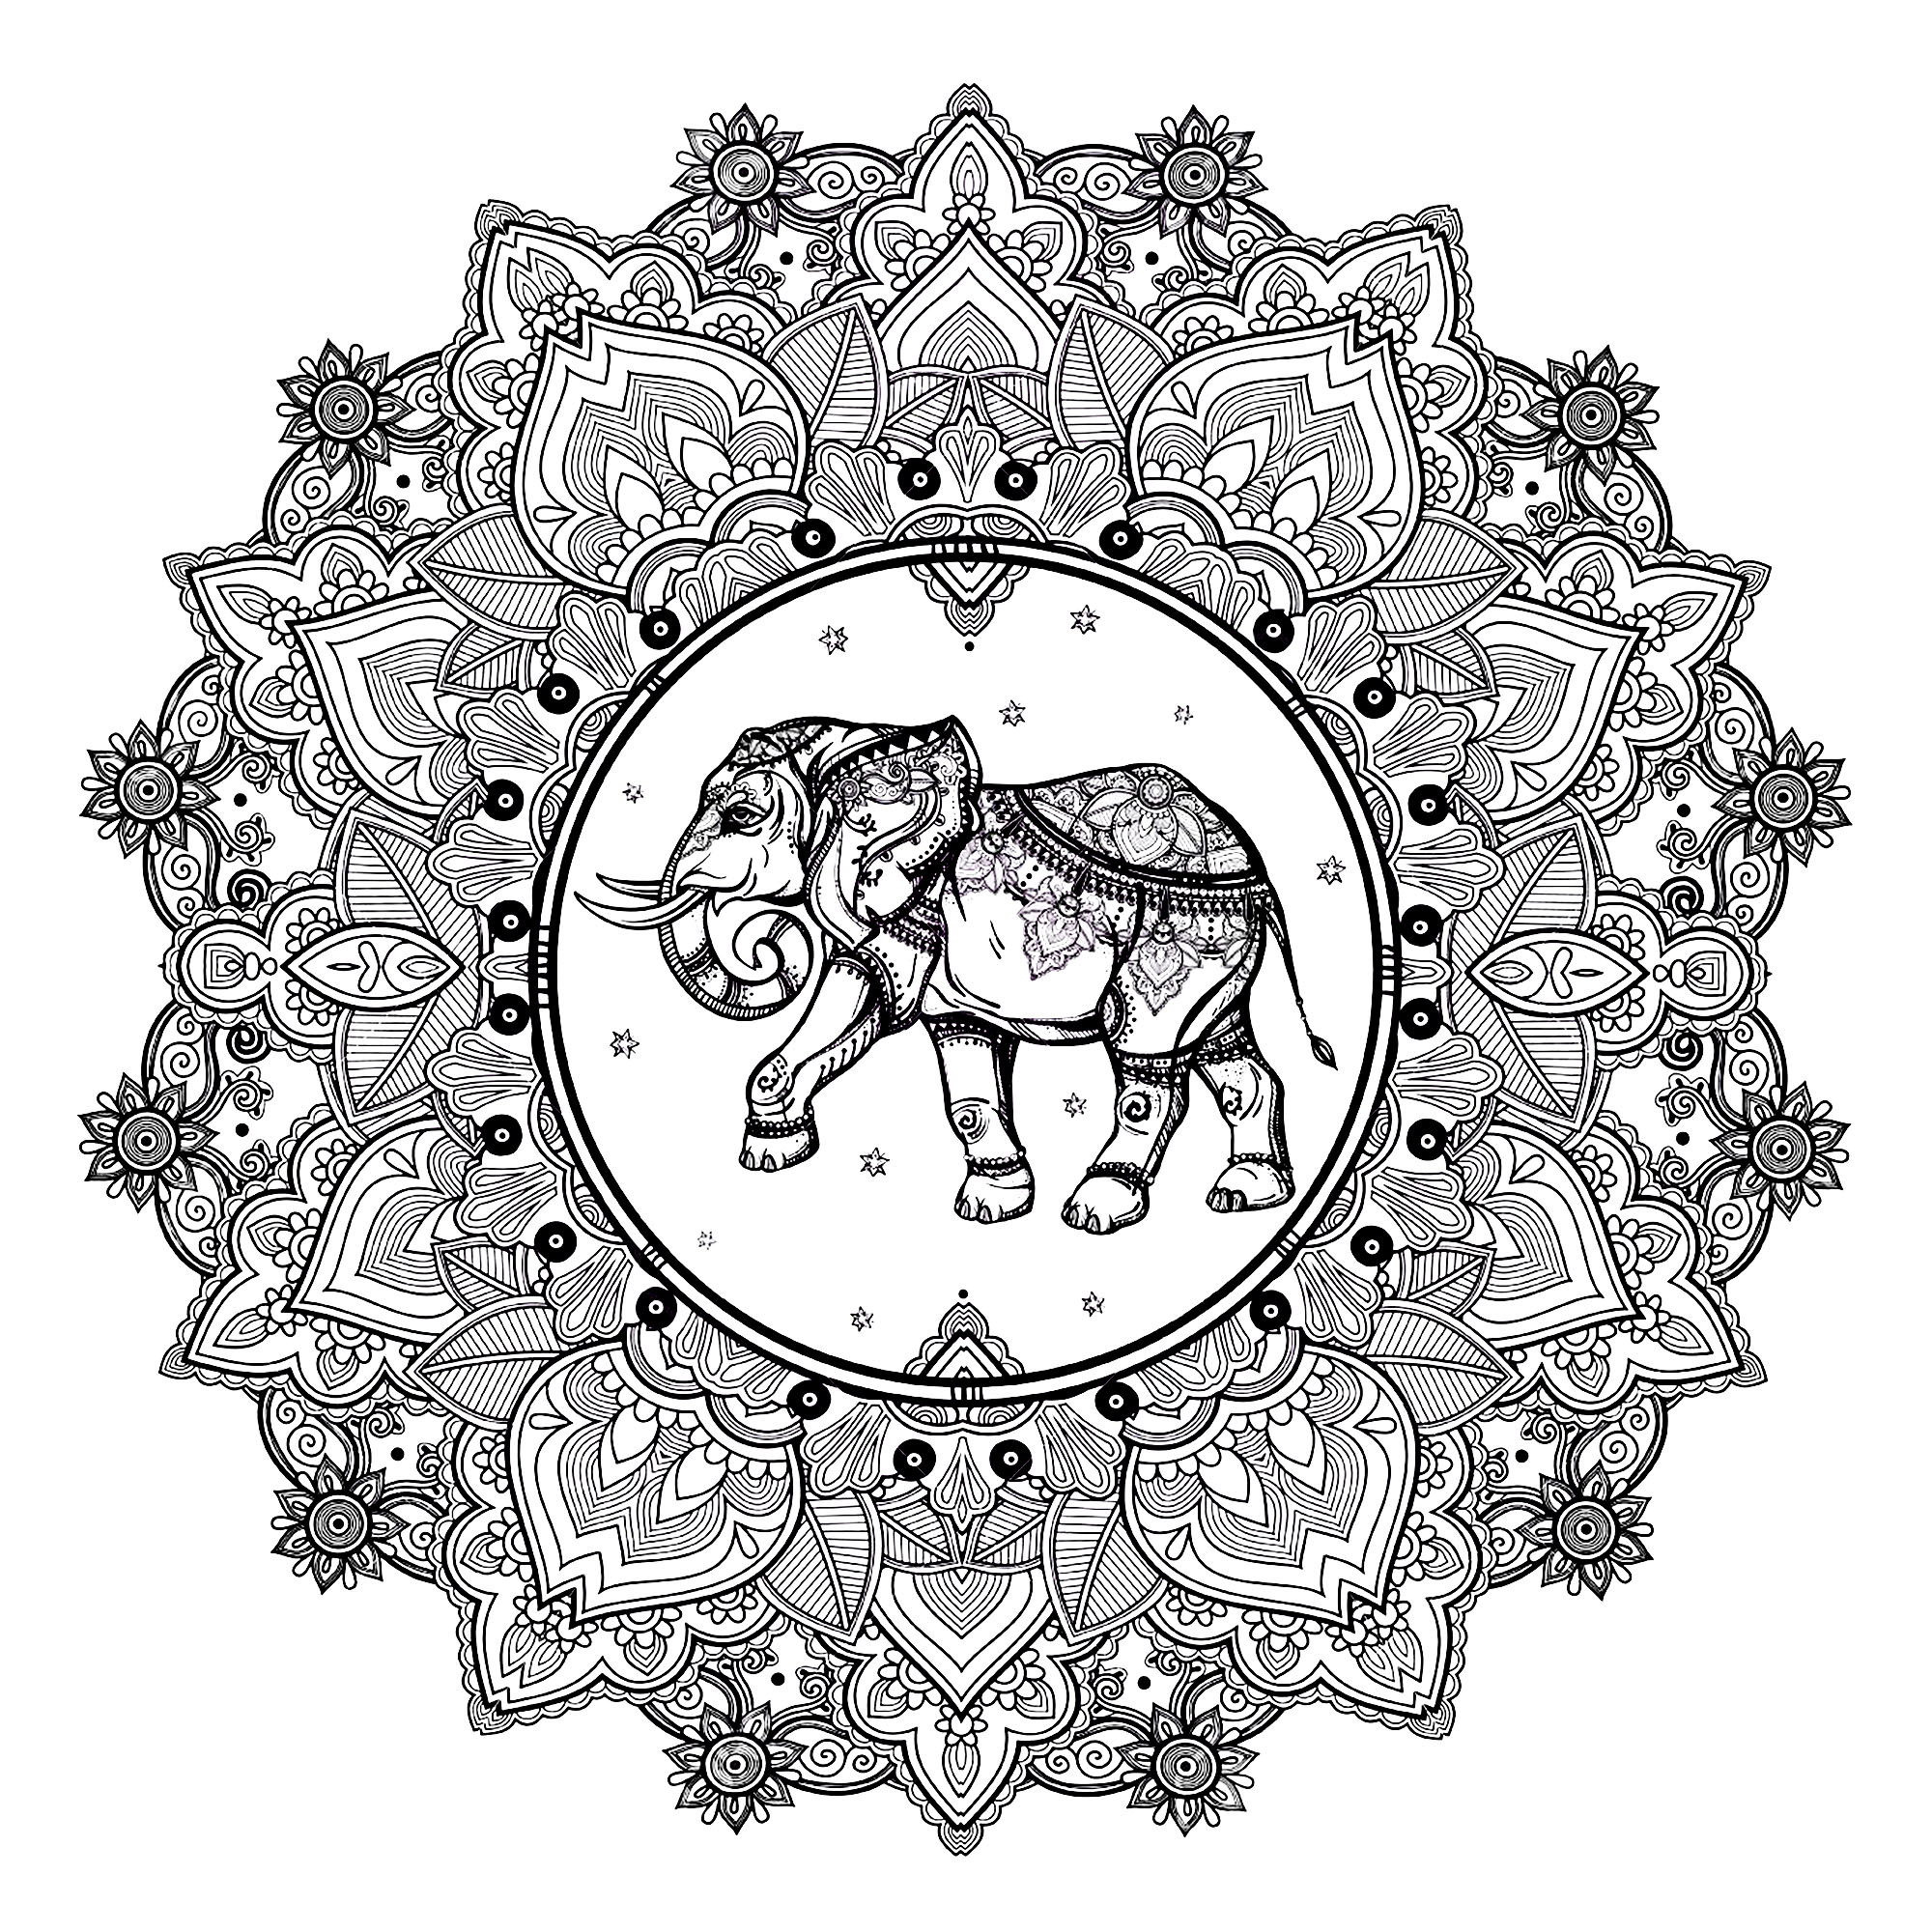 A beautiful Mandala coloring page with an elephant and Indian inspired patterns, of great quality and originality. It's up to you to choose the most appropriate colors.